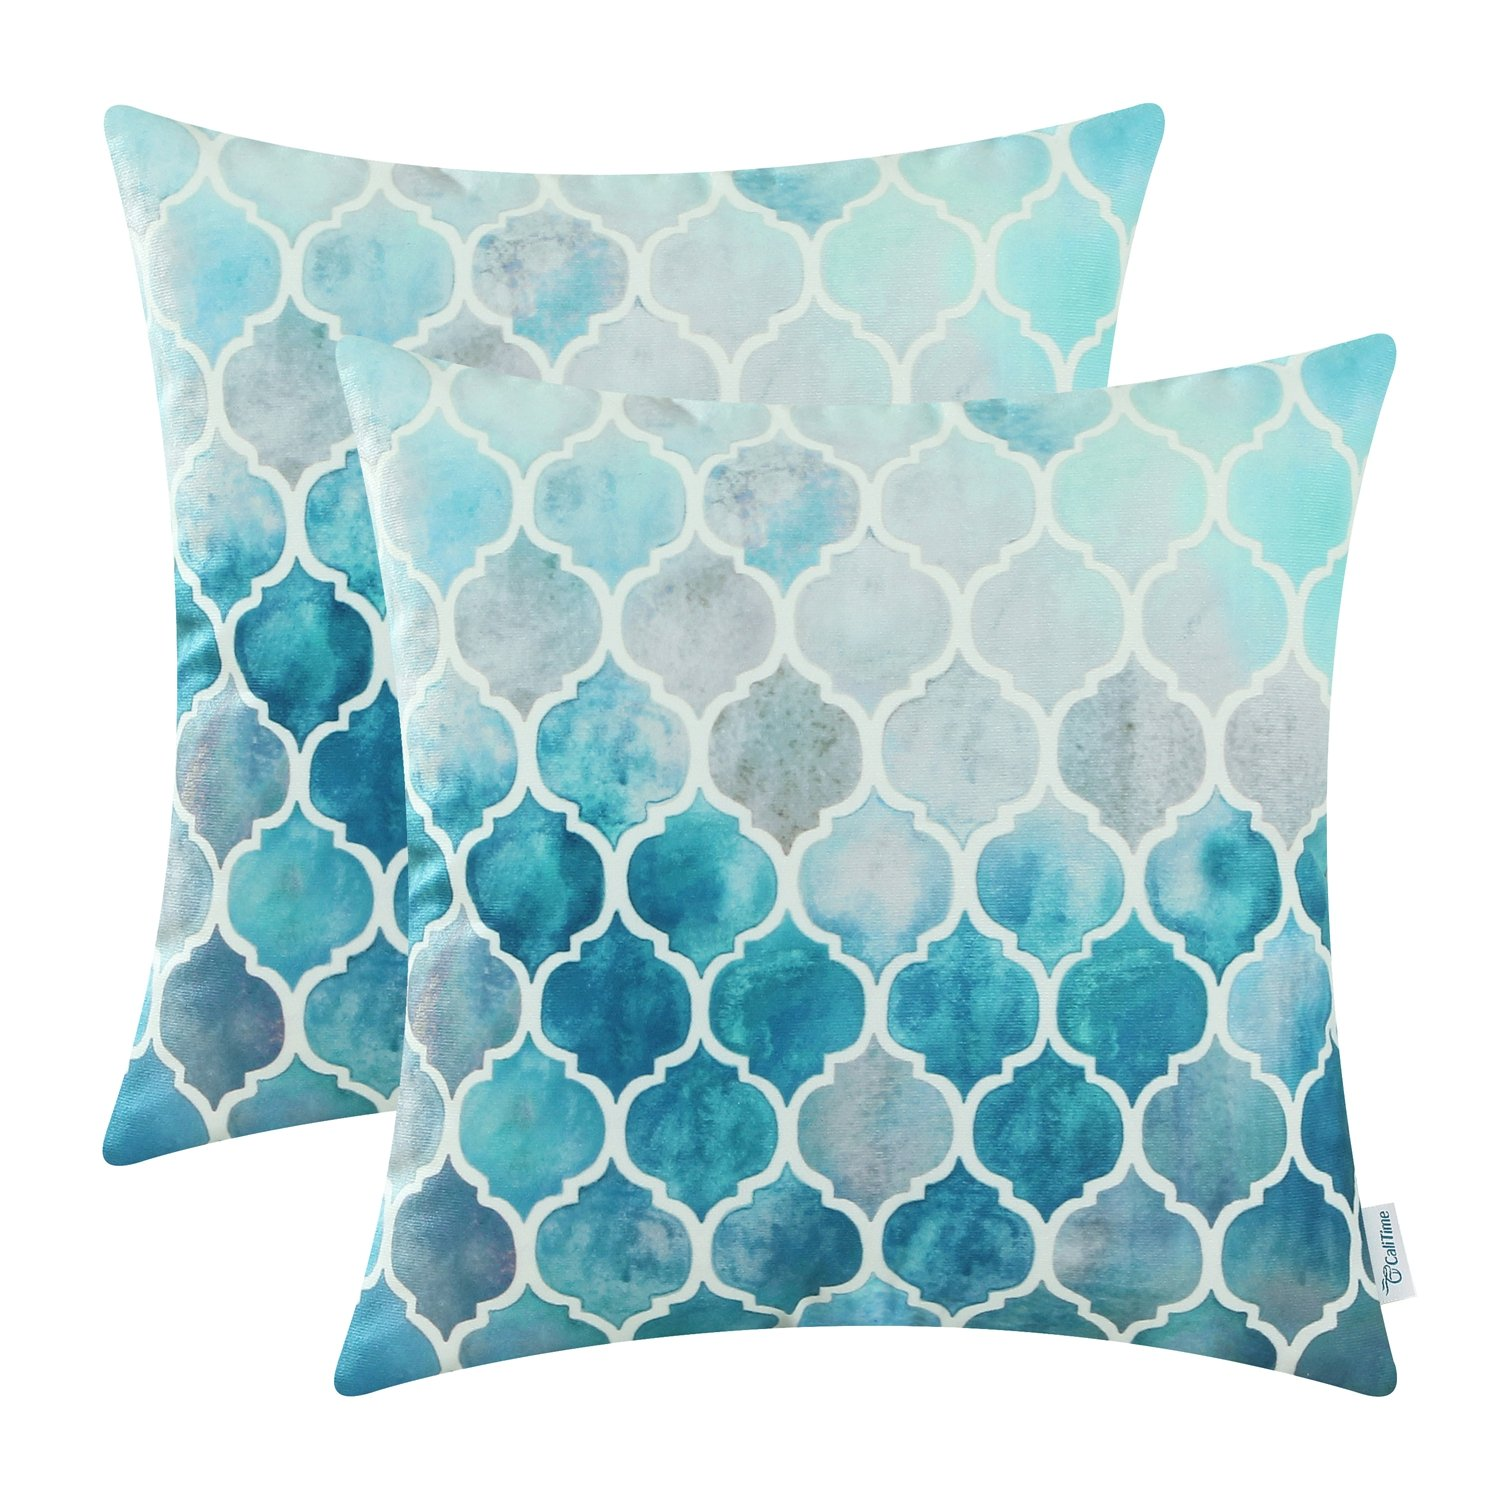 decorative pillows aqua amazon com rh amazon com cheap decor pillows cheap decor pillows